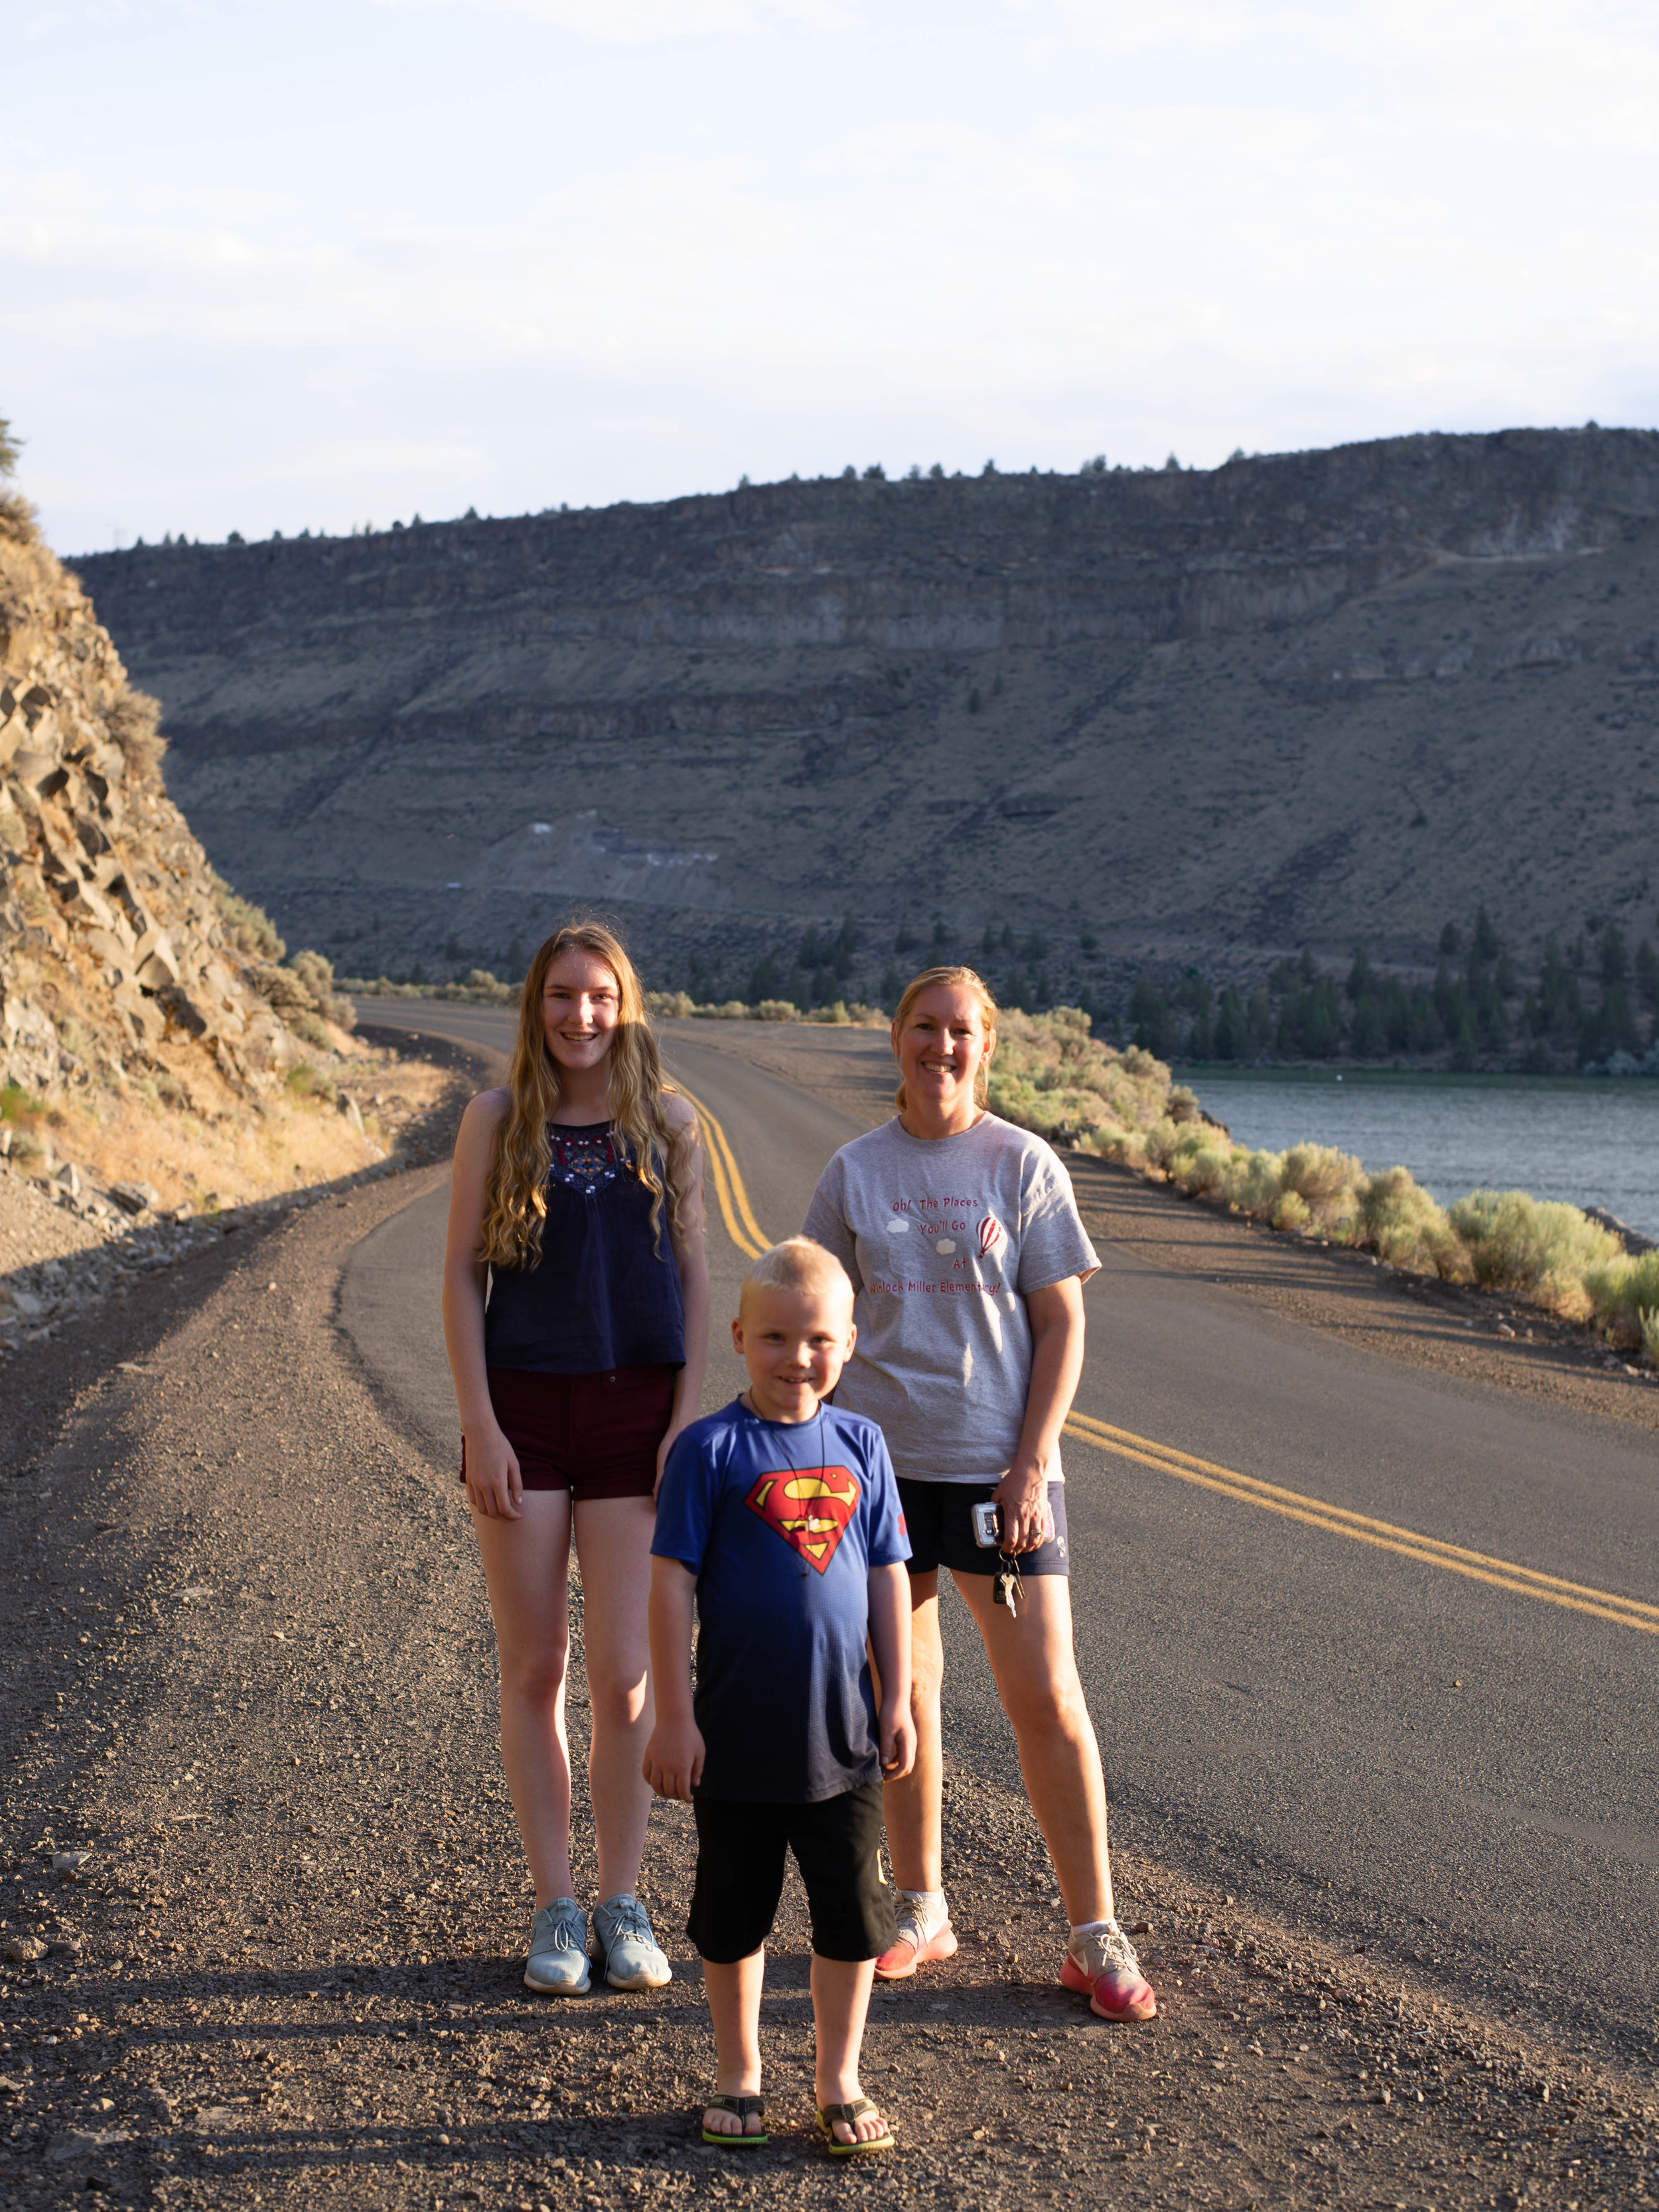 Gorgeous views inside The Cove Palisades State Park